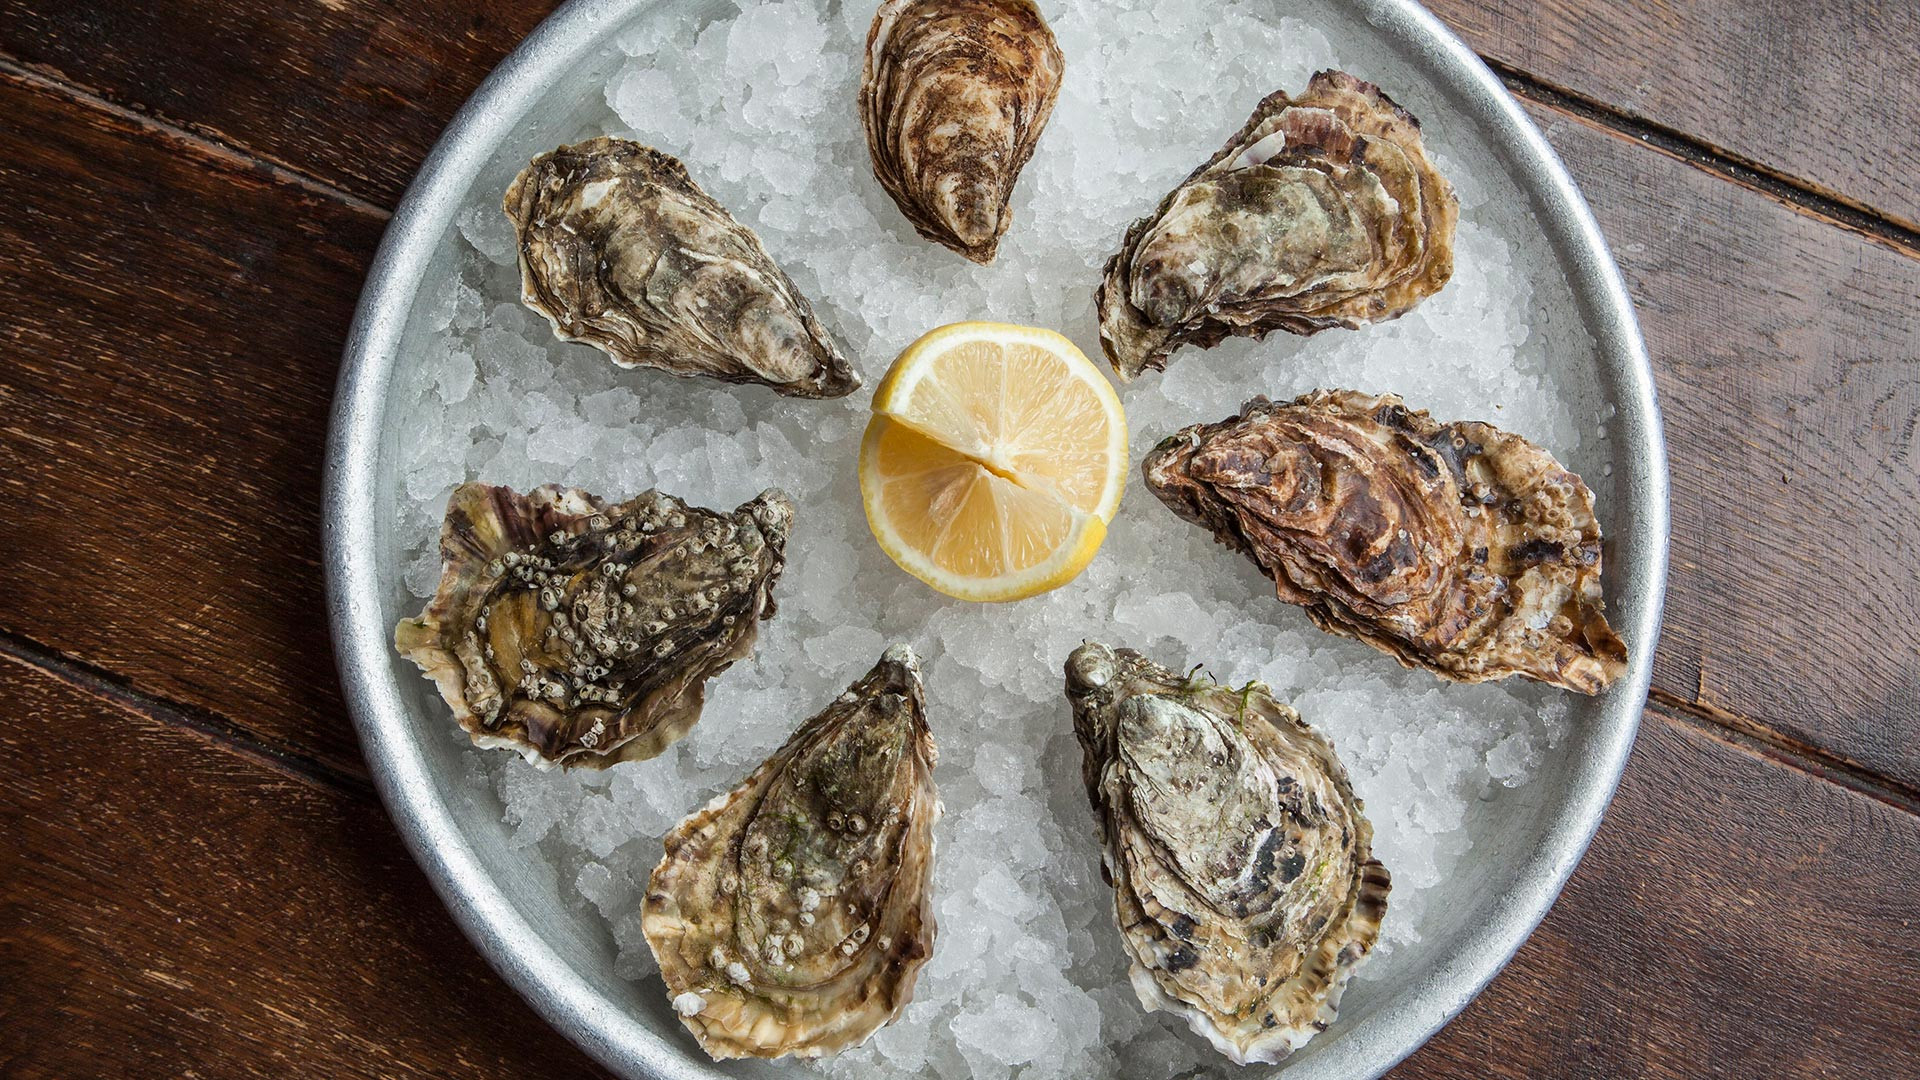 Oysters at Wright Bros